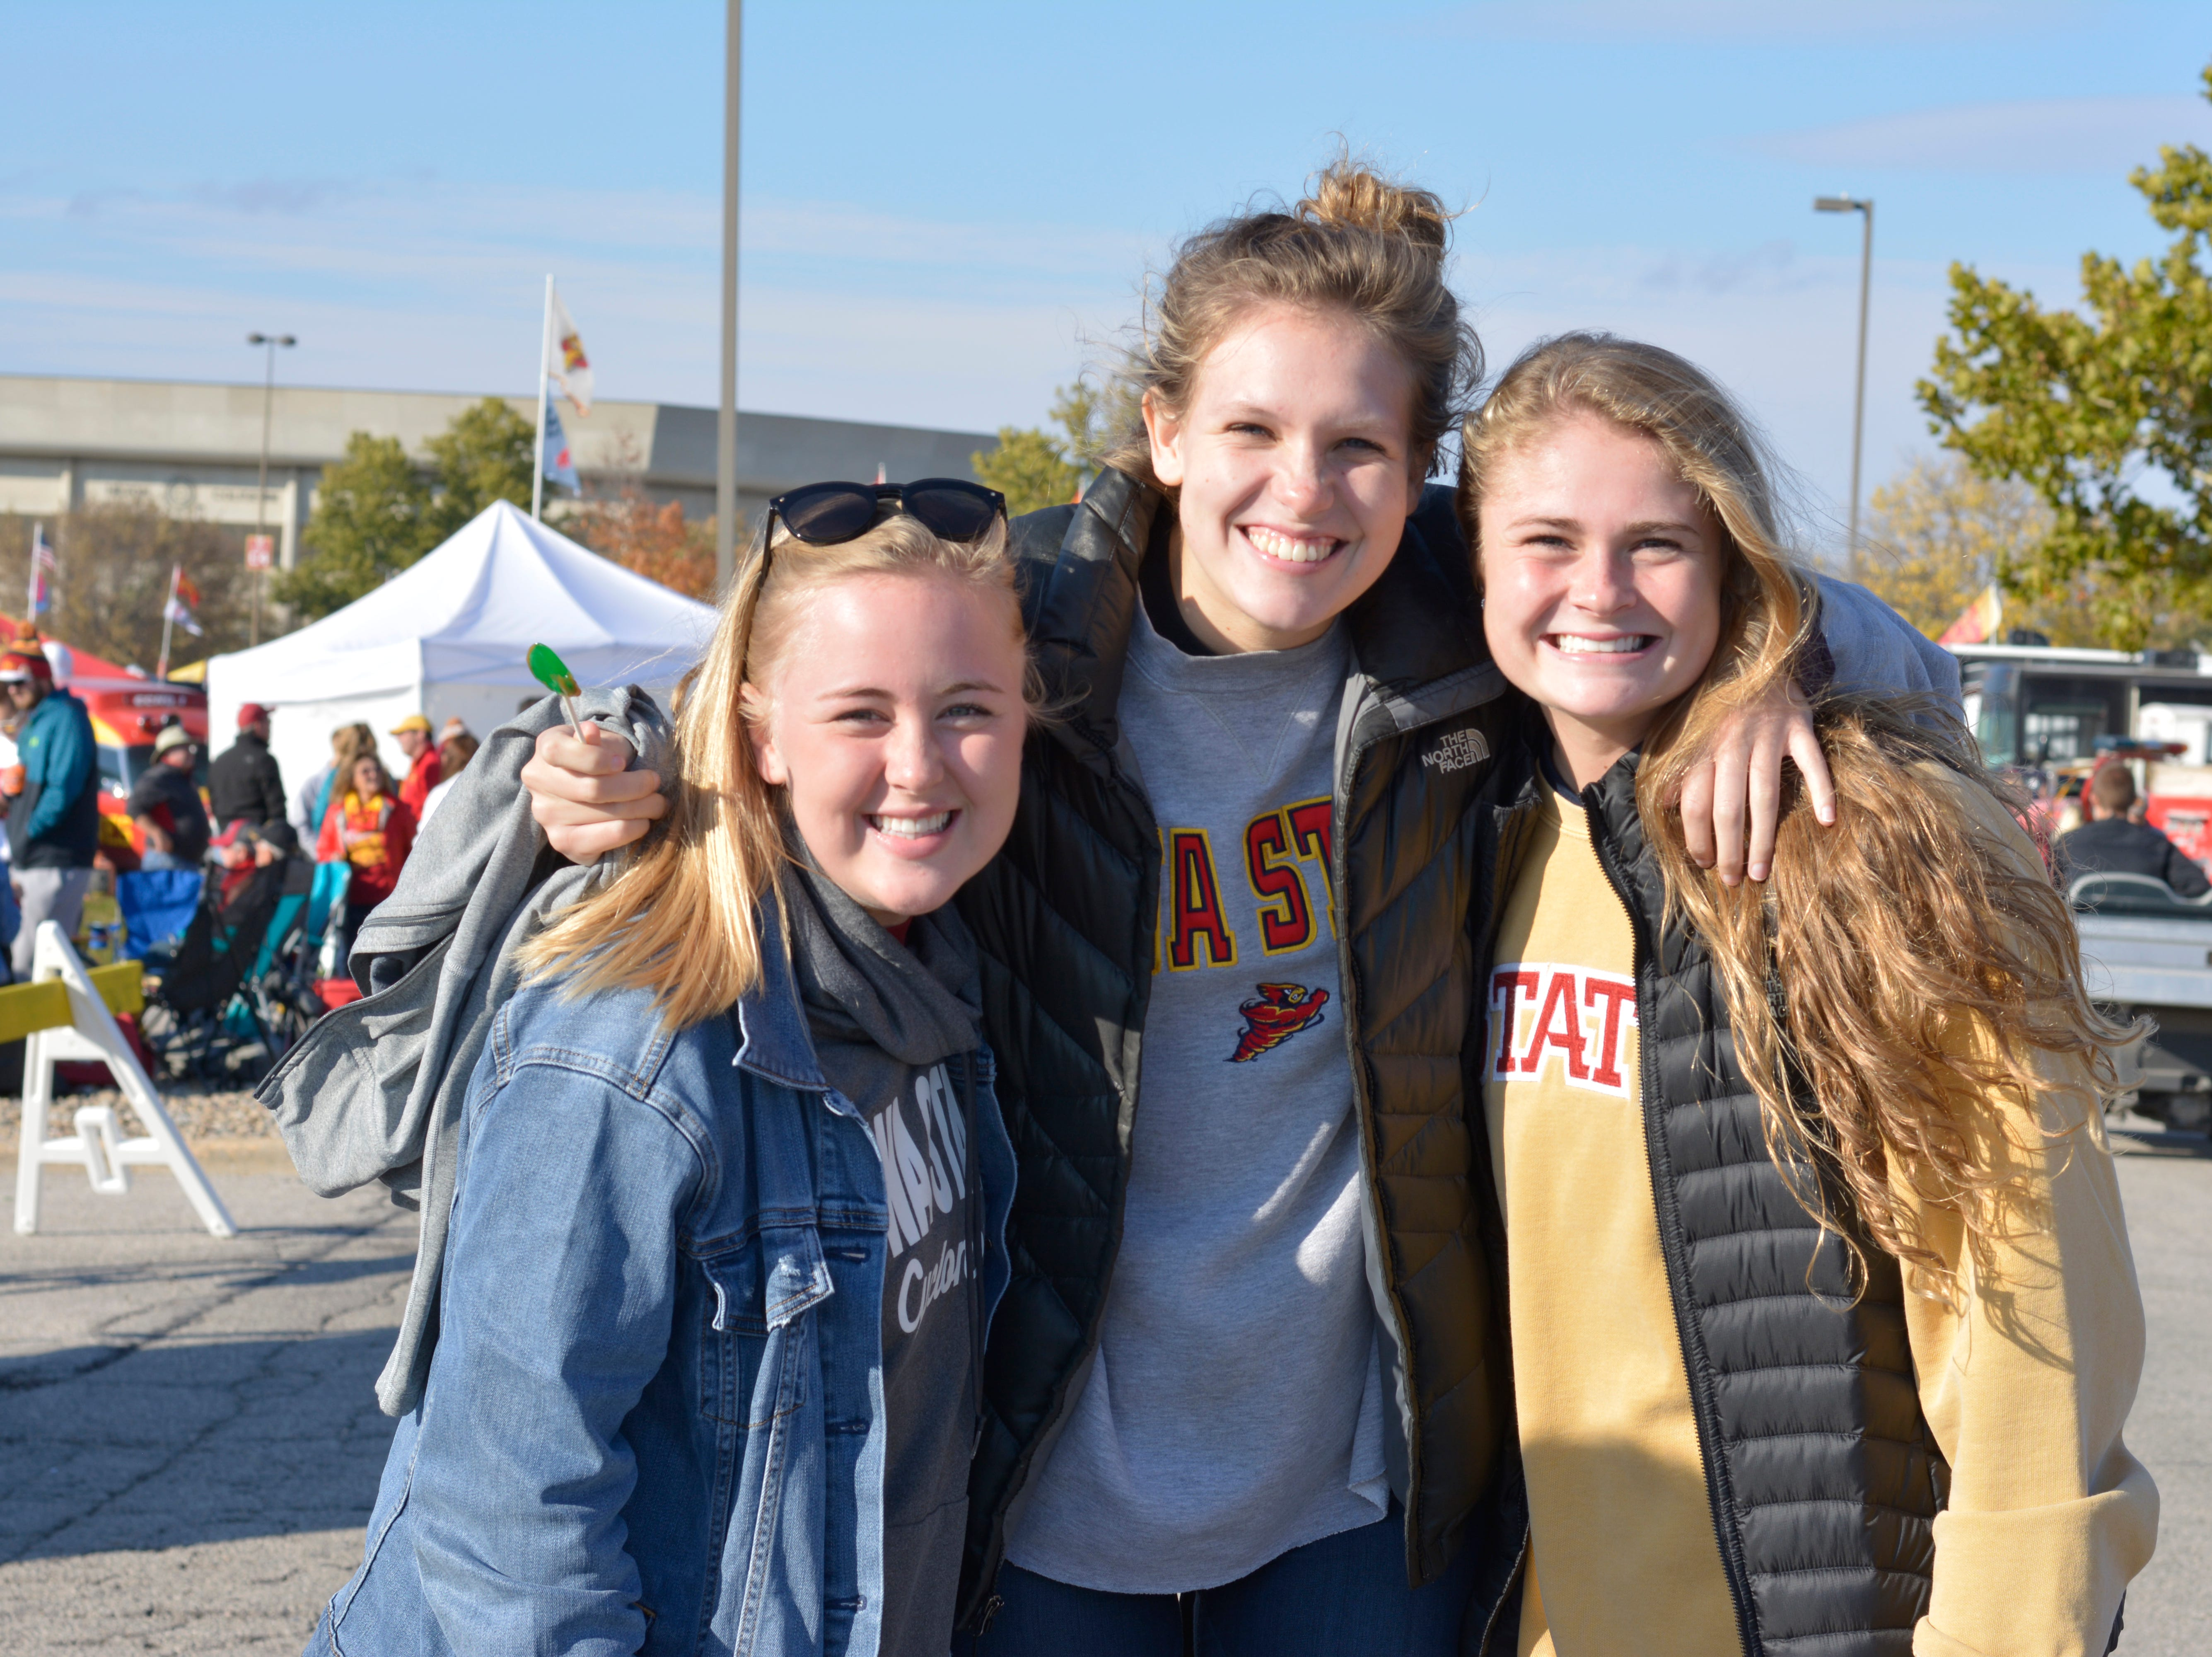 Morgan Weydert (left), Abby Zaugg (middle) and Casie Peyton (right) before the Iowa State University football game against West Virginia in Ames on Oct. 13.